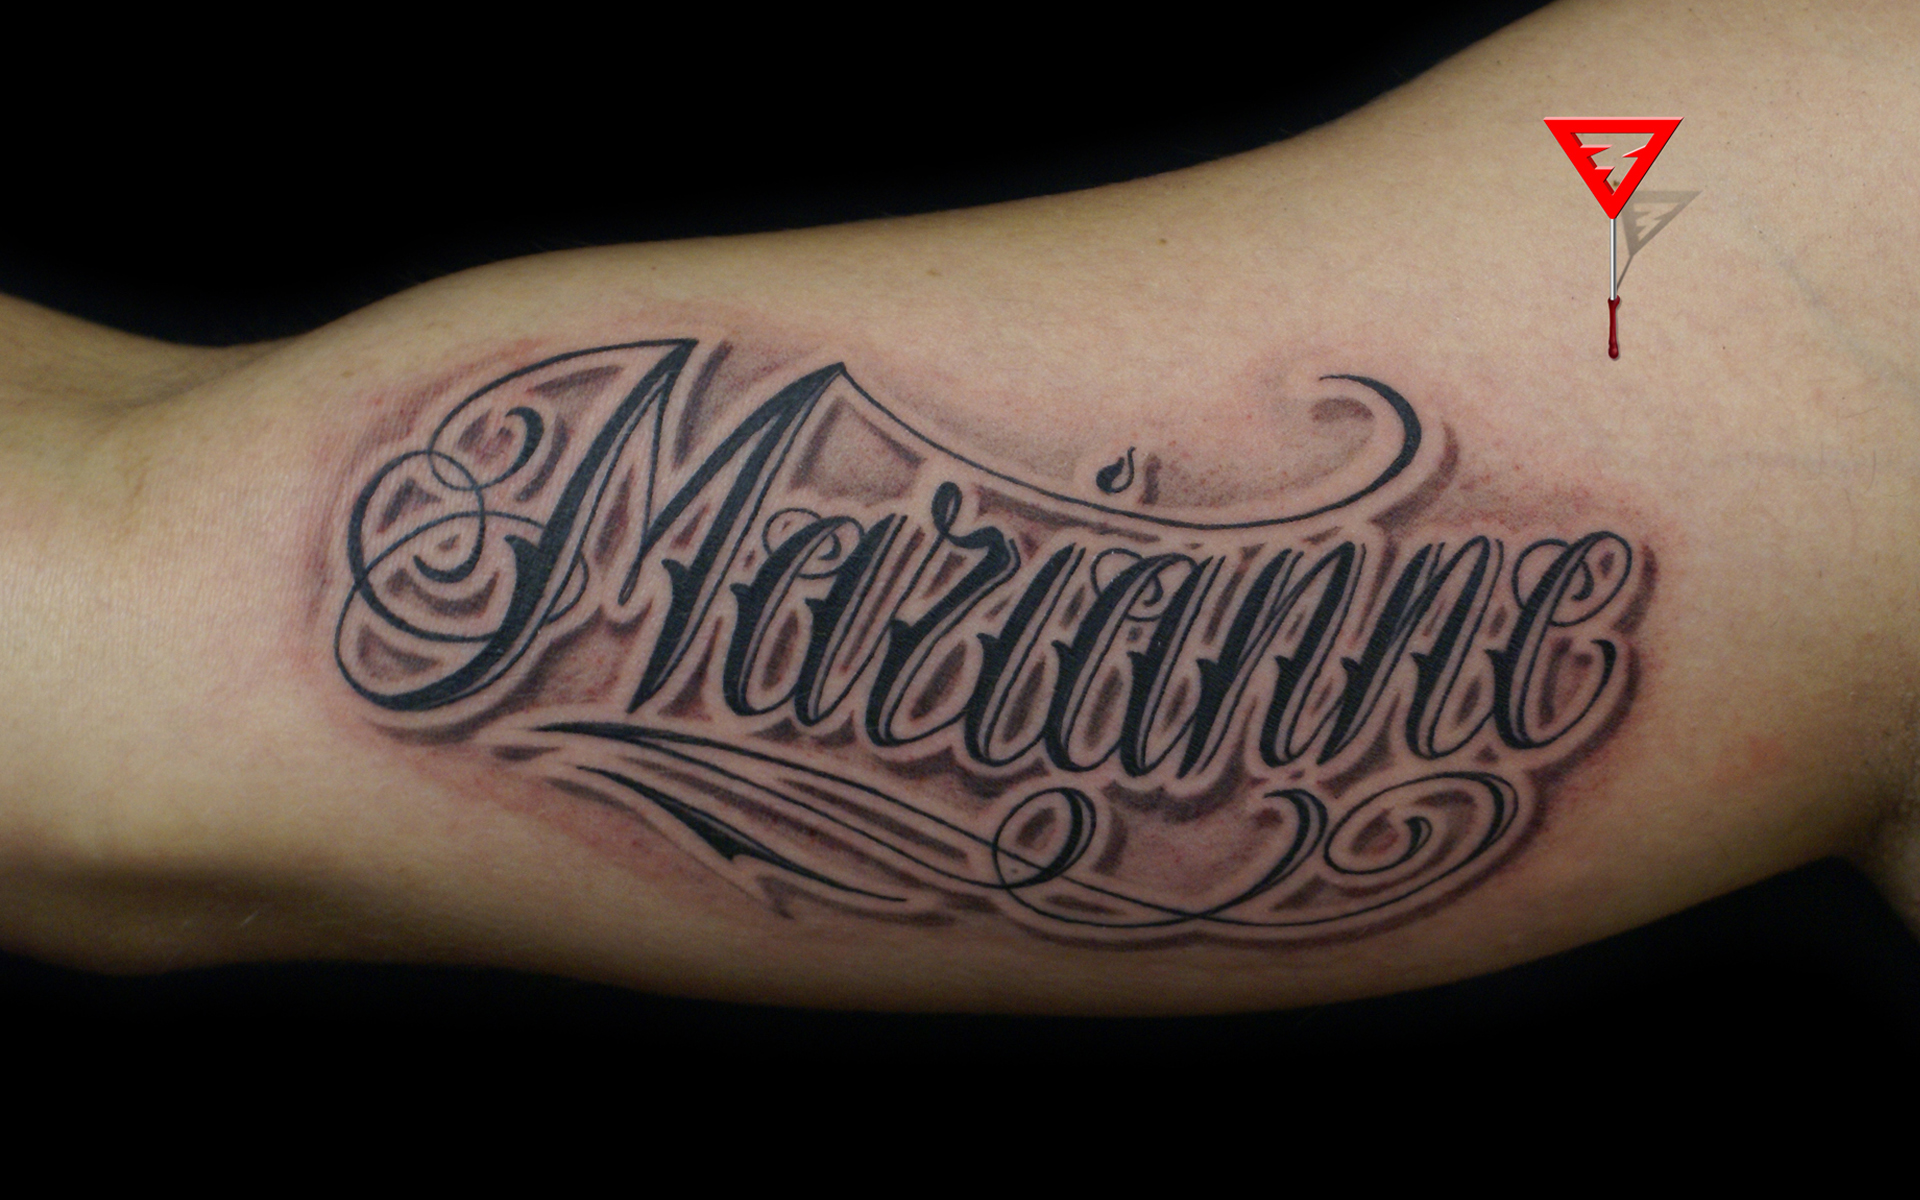 Forearm Lettering Tattoos